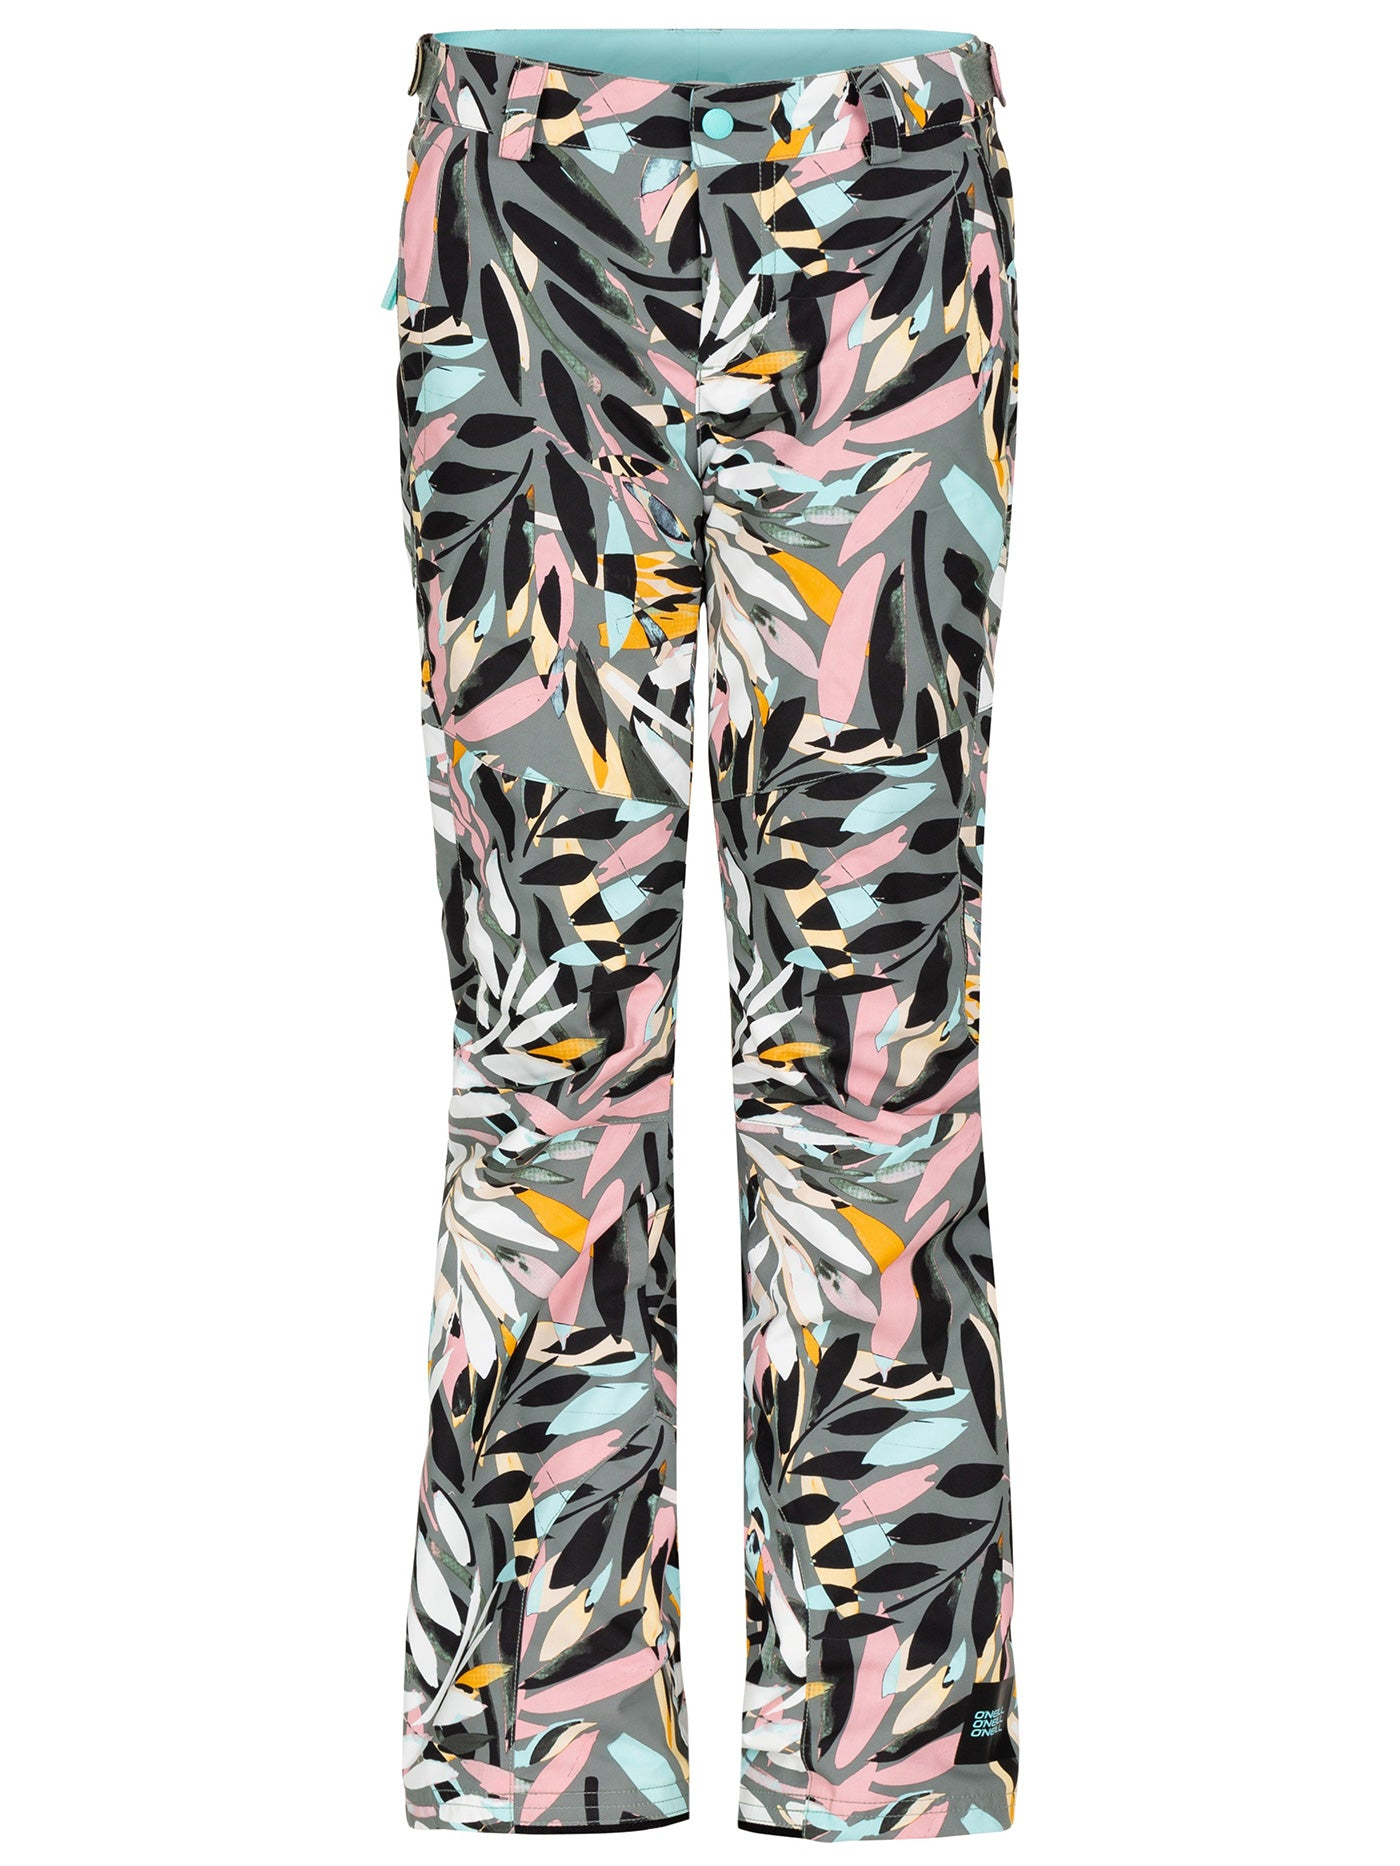 Charm Slim Insulated Pants (Girls 7-14)